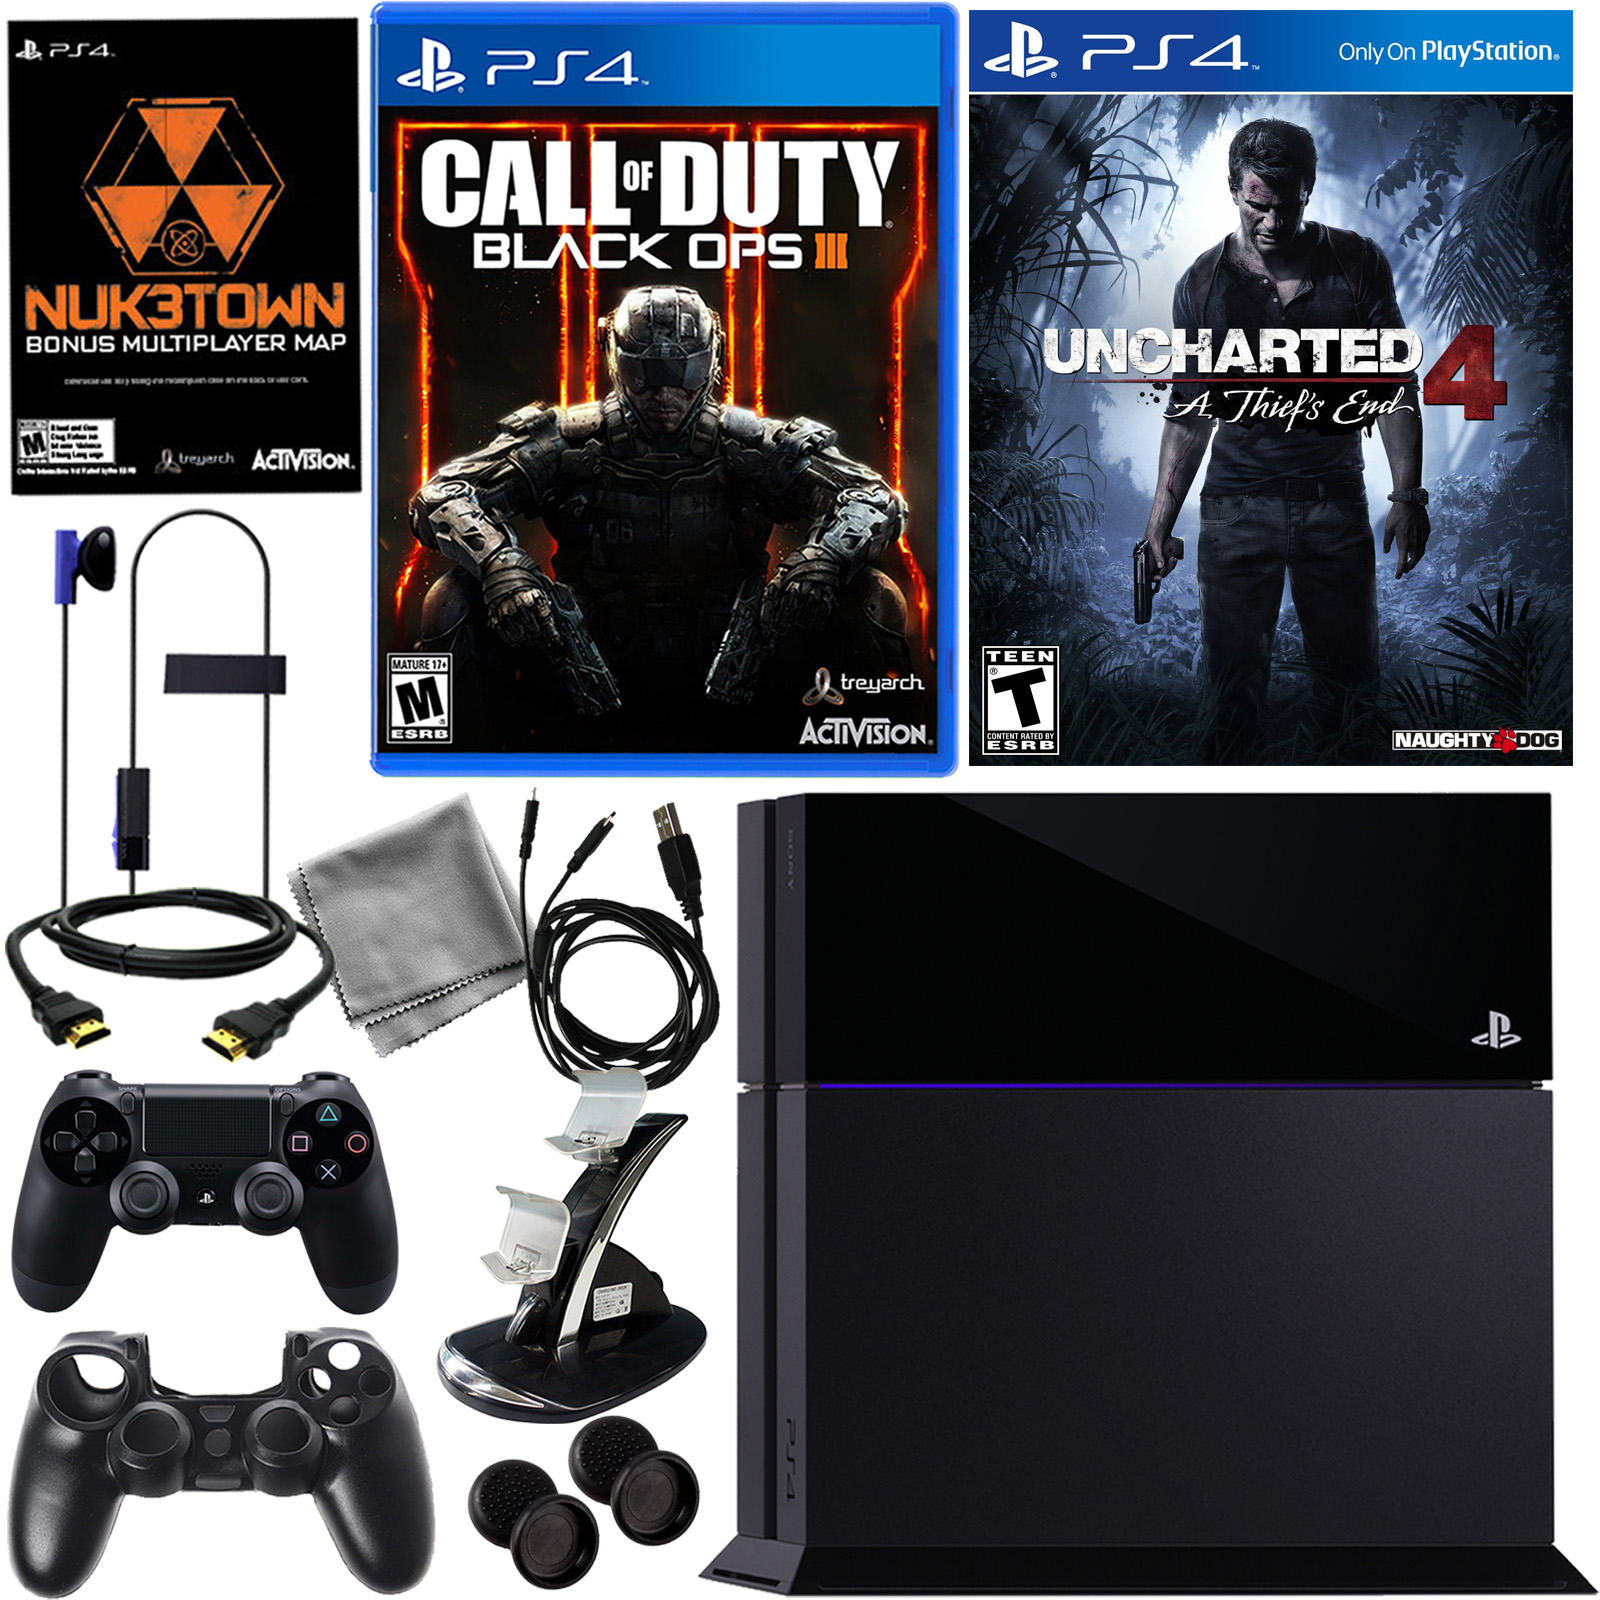 PlayStation 4 500GB Black OPS III Bundle with Uncharted 4 Thief's End & More